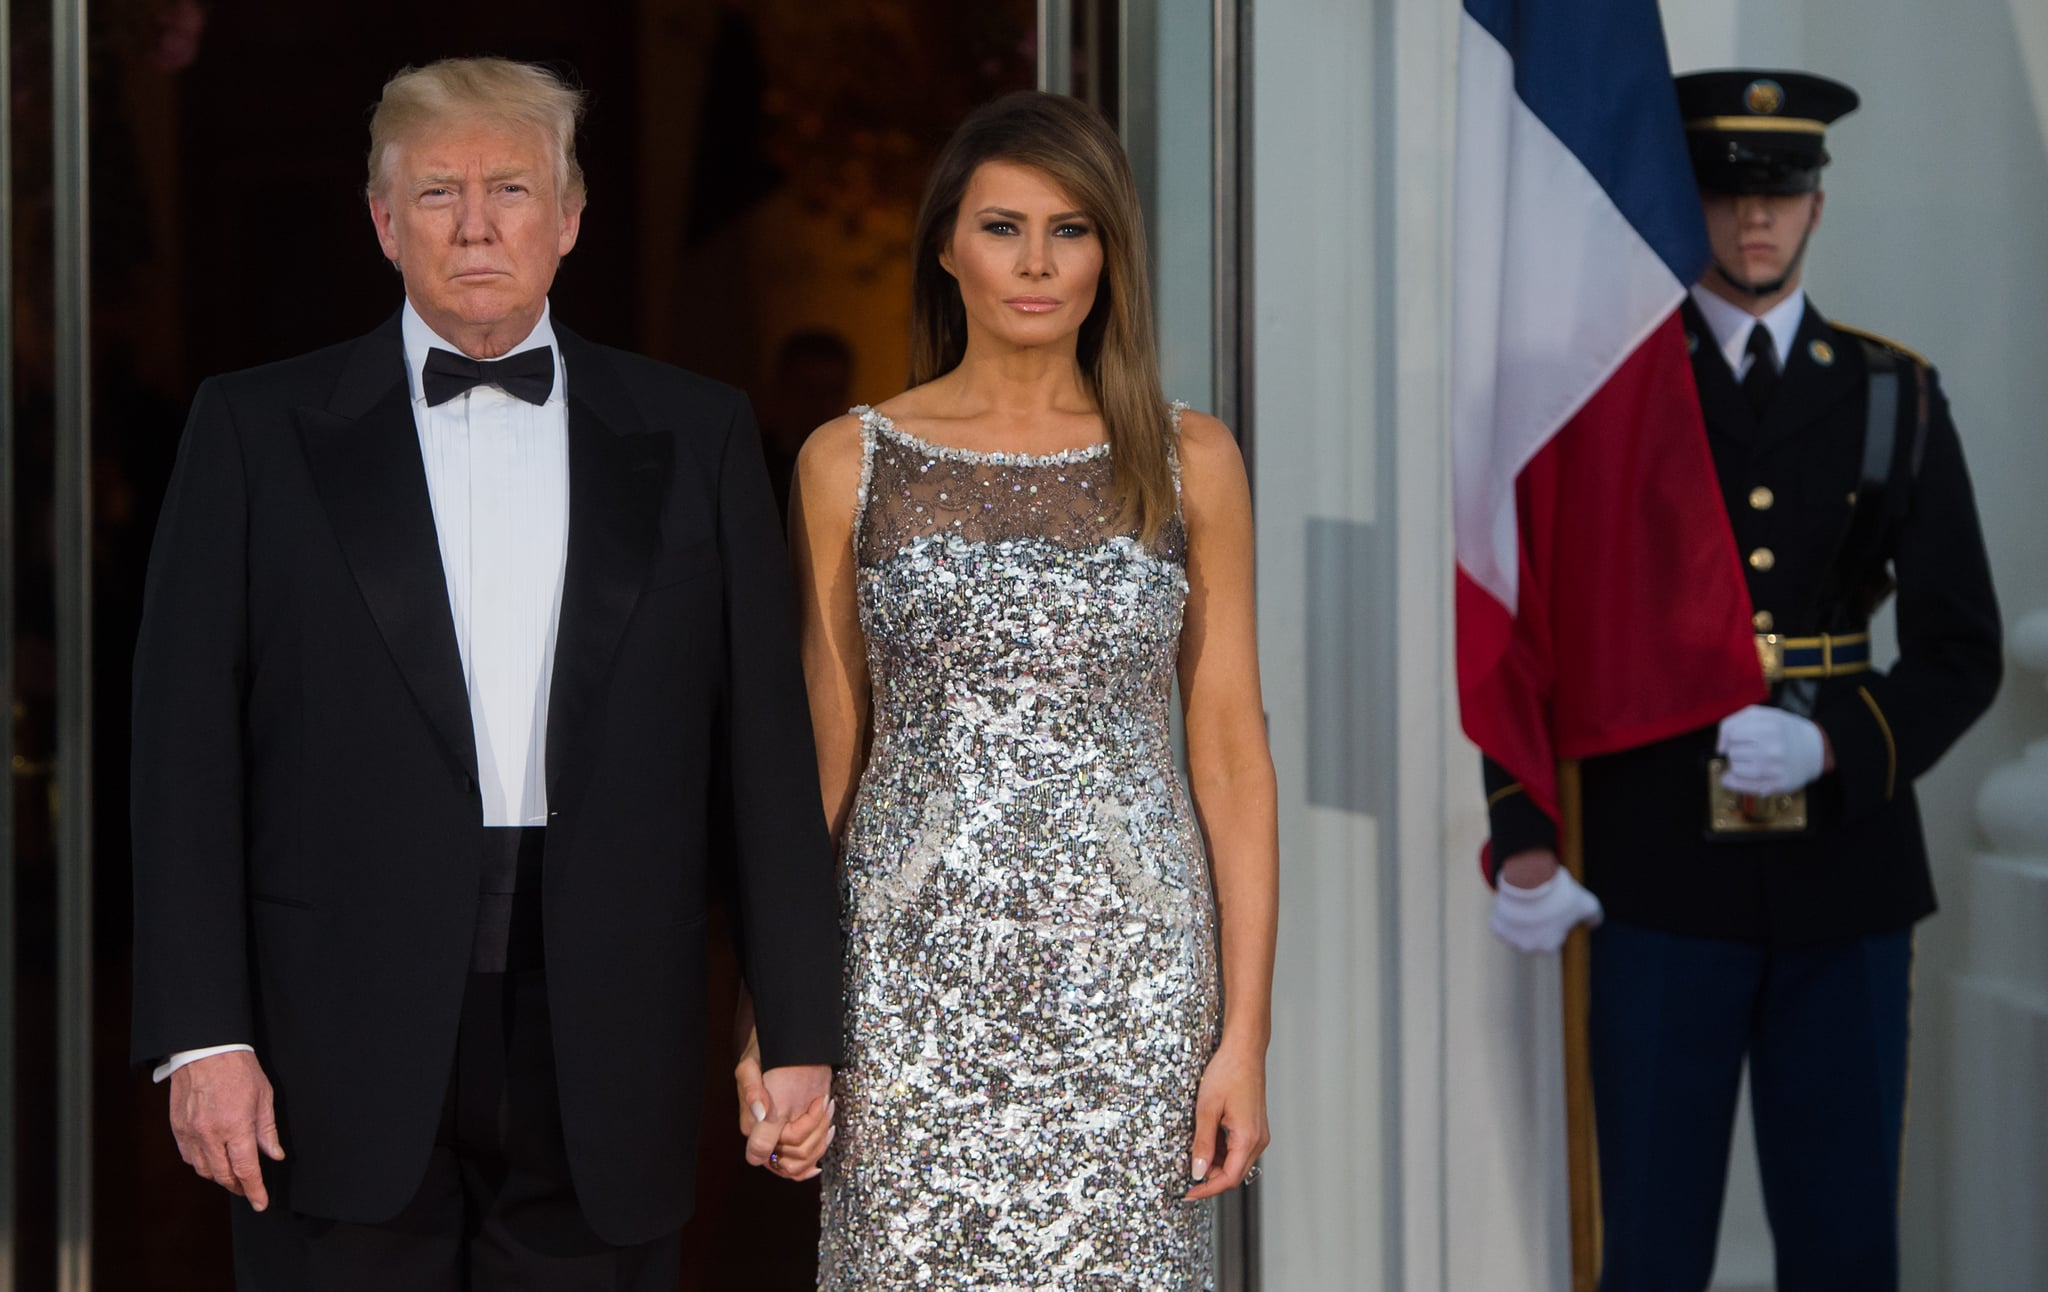 TOPSHOT - US President Donald Trump and First Lady Melania Trump welcome French President Emmanuel Macron and his wife Brigitte Macron as they arrive for a State Dinner at the North Portico of the White House in Washington, DC, April 24, 2018. (Photo by SAUL LOEB / AFP)        (Photo credit should read SAUL LOEB/AFP/Getty Images)